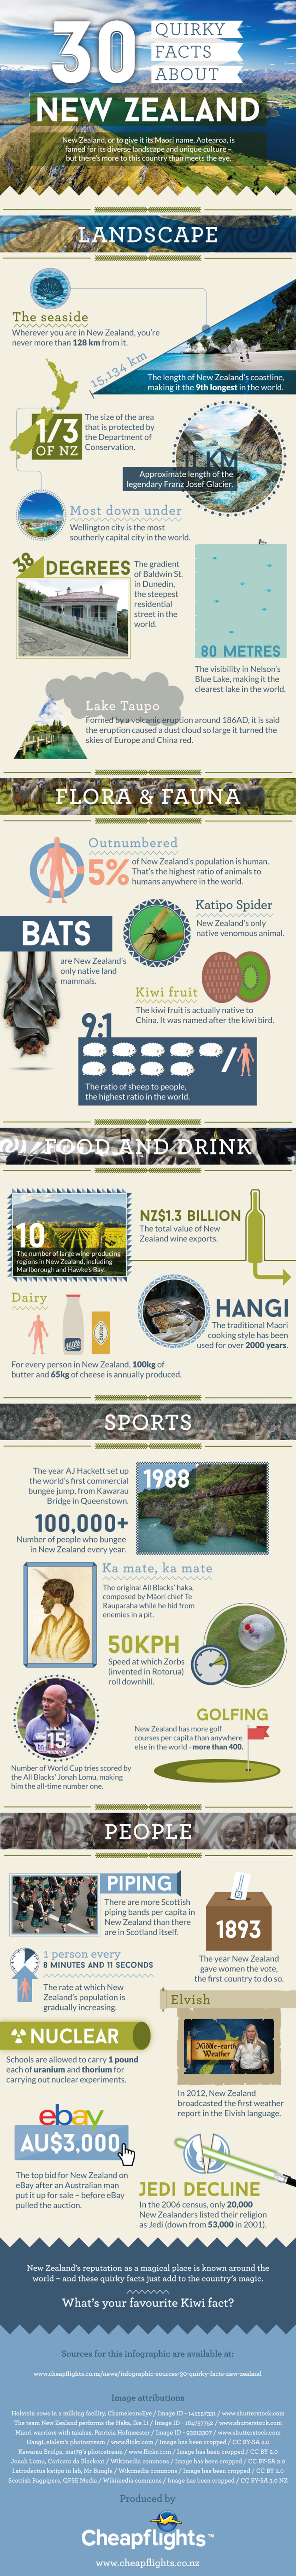 30 Interesting Facts About New Zealand - Travel infographic